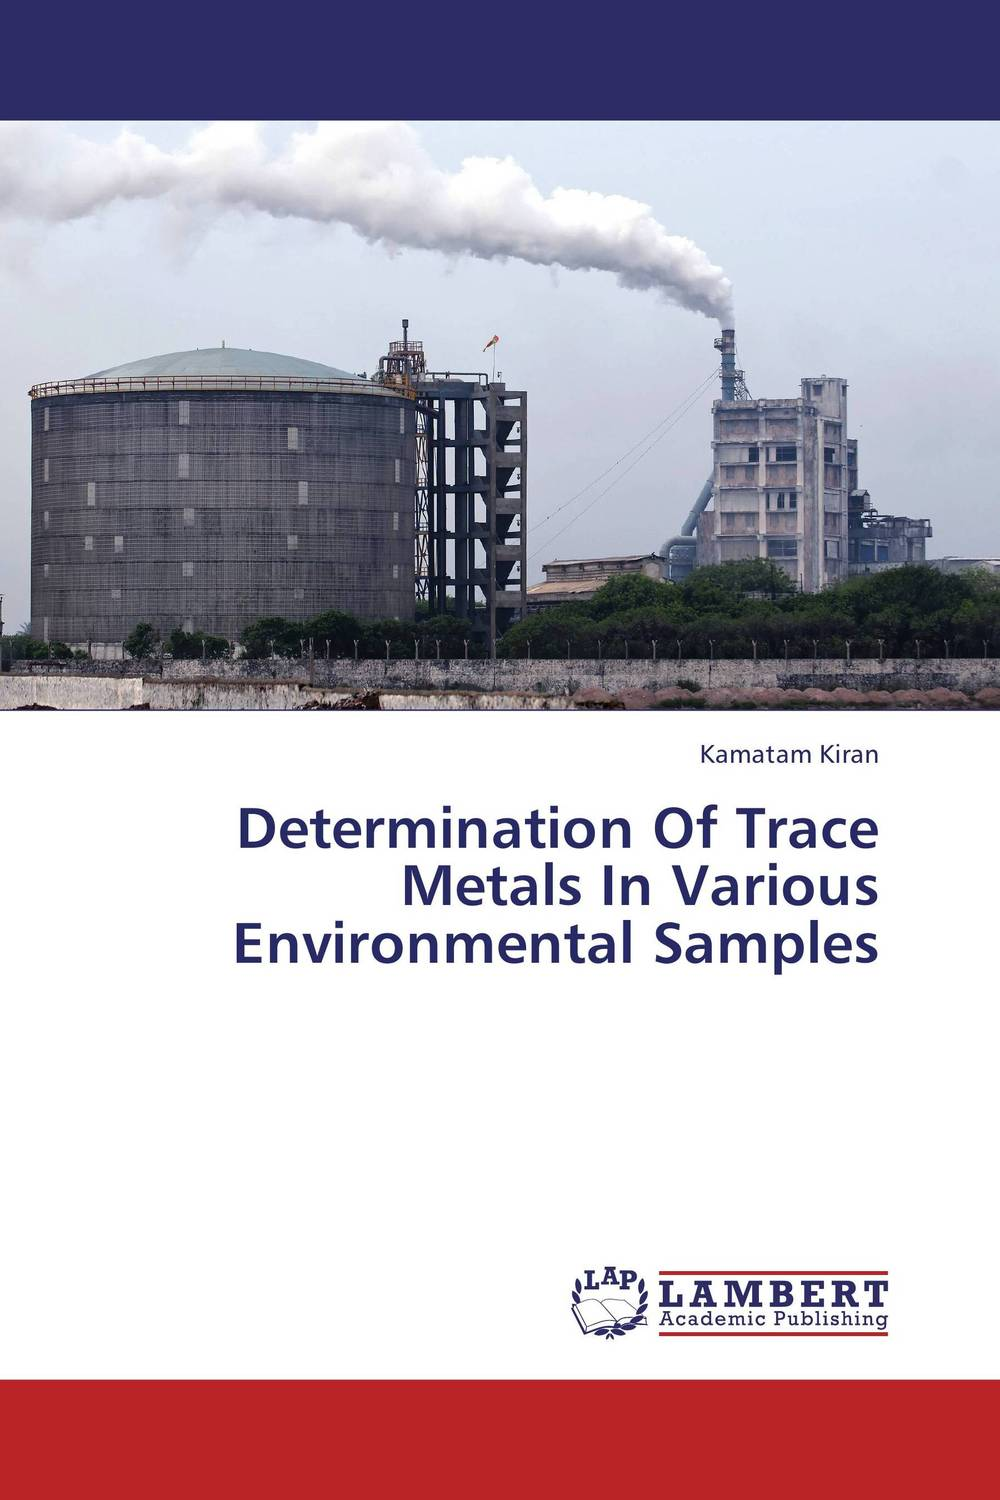 Determination Of Trace Metals In Various Environmental Samples